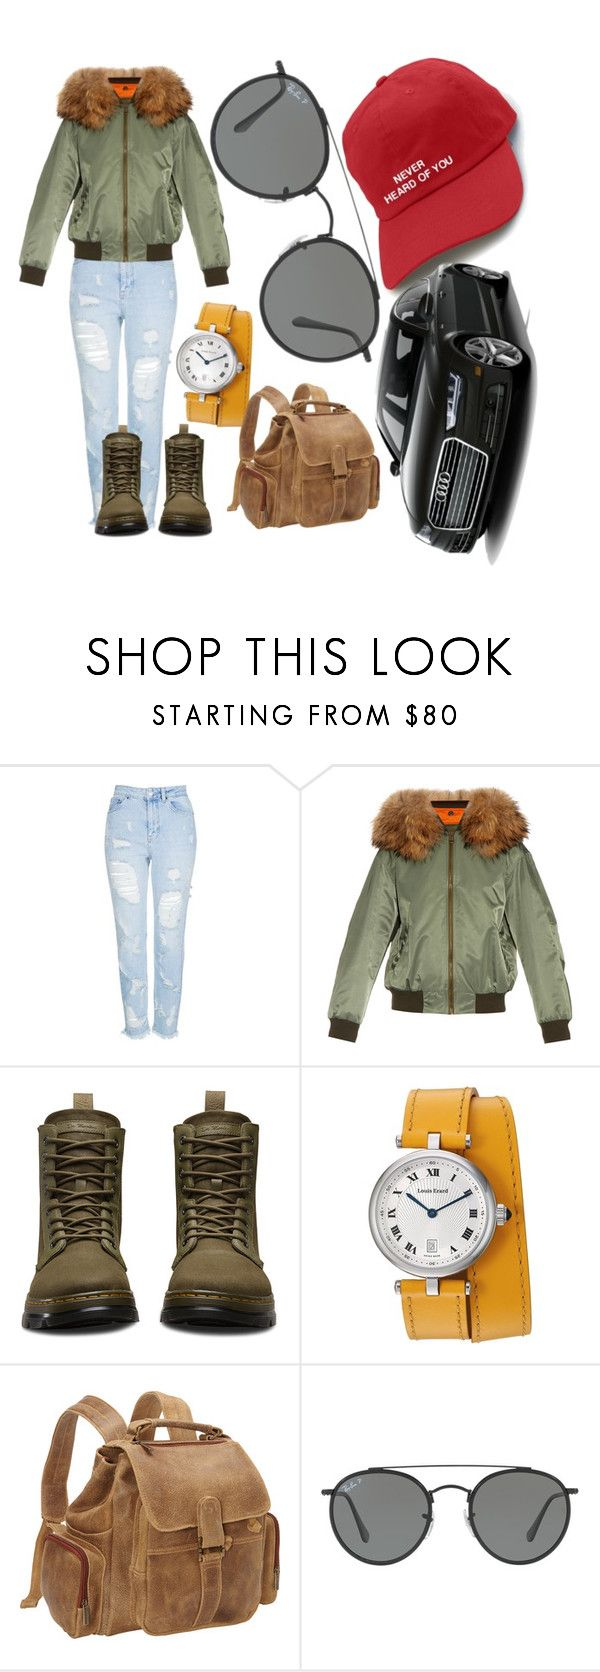 """""""#sunglasses #car #hat"""" by aysenur-odemis ❤ liked on Polyvore featuring Topshop, Mr & Mrs Italy, Dr. Martens, Le Donne and Ray-Ban"""